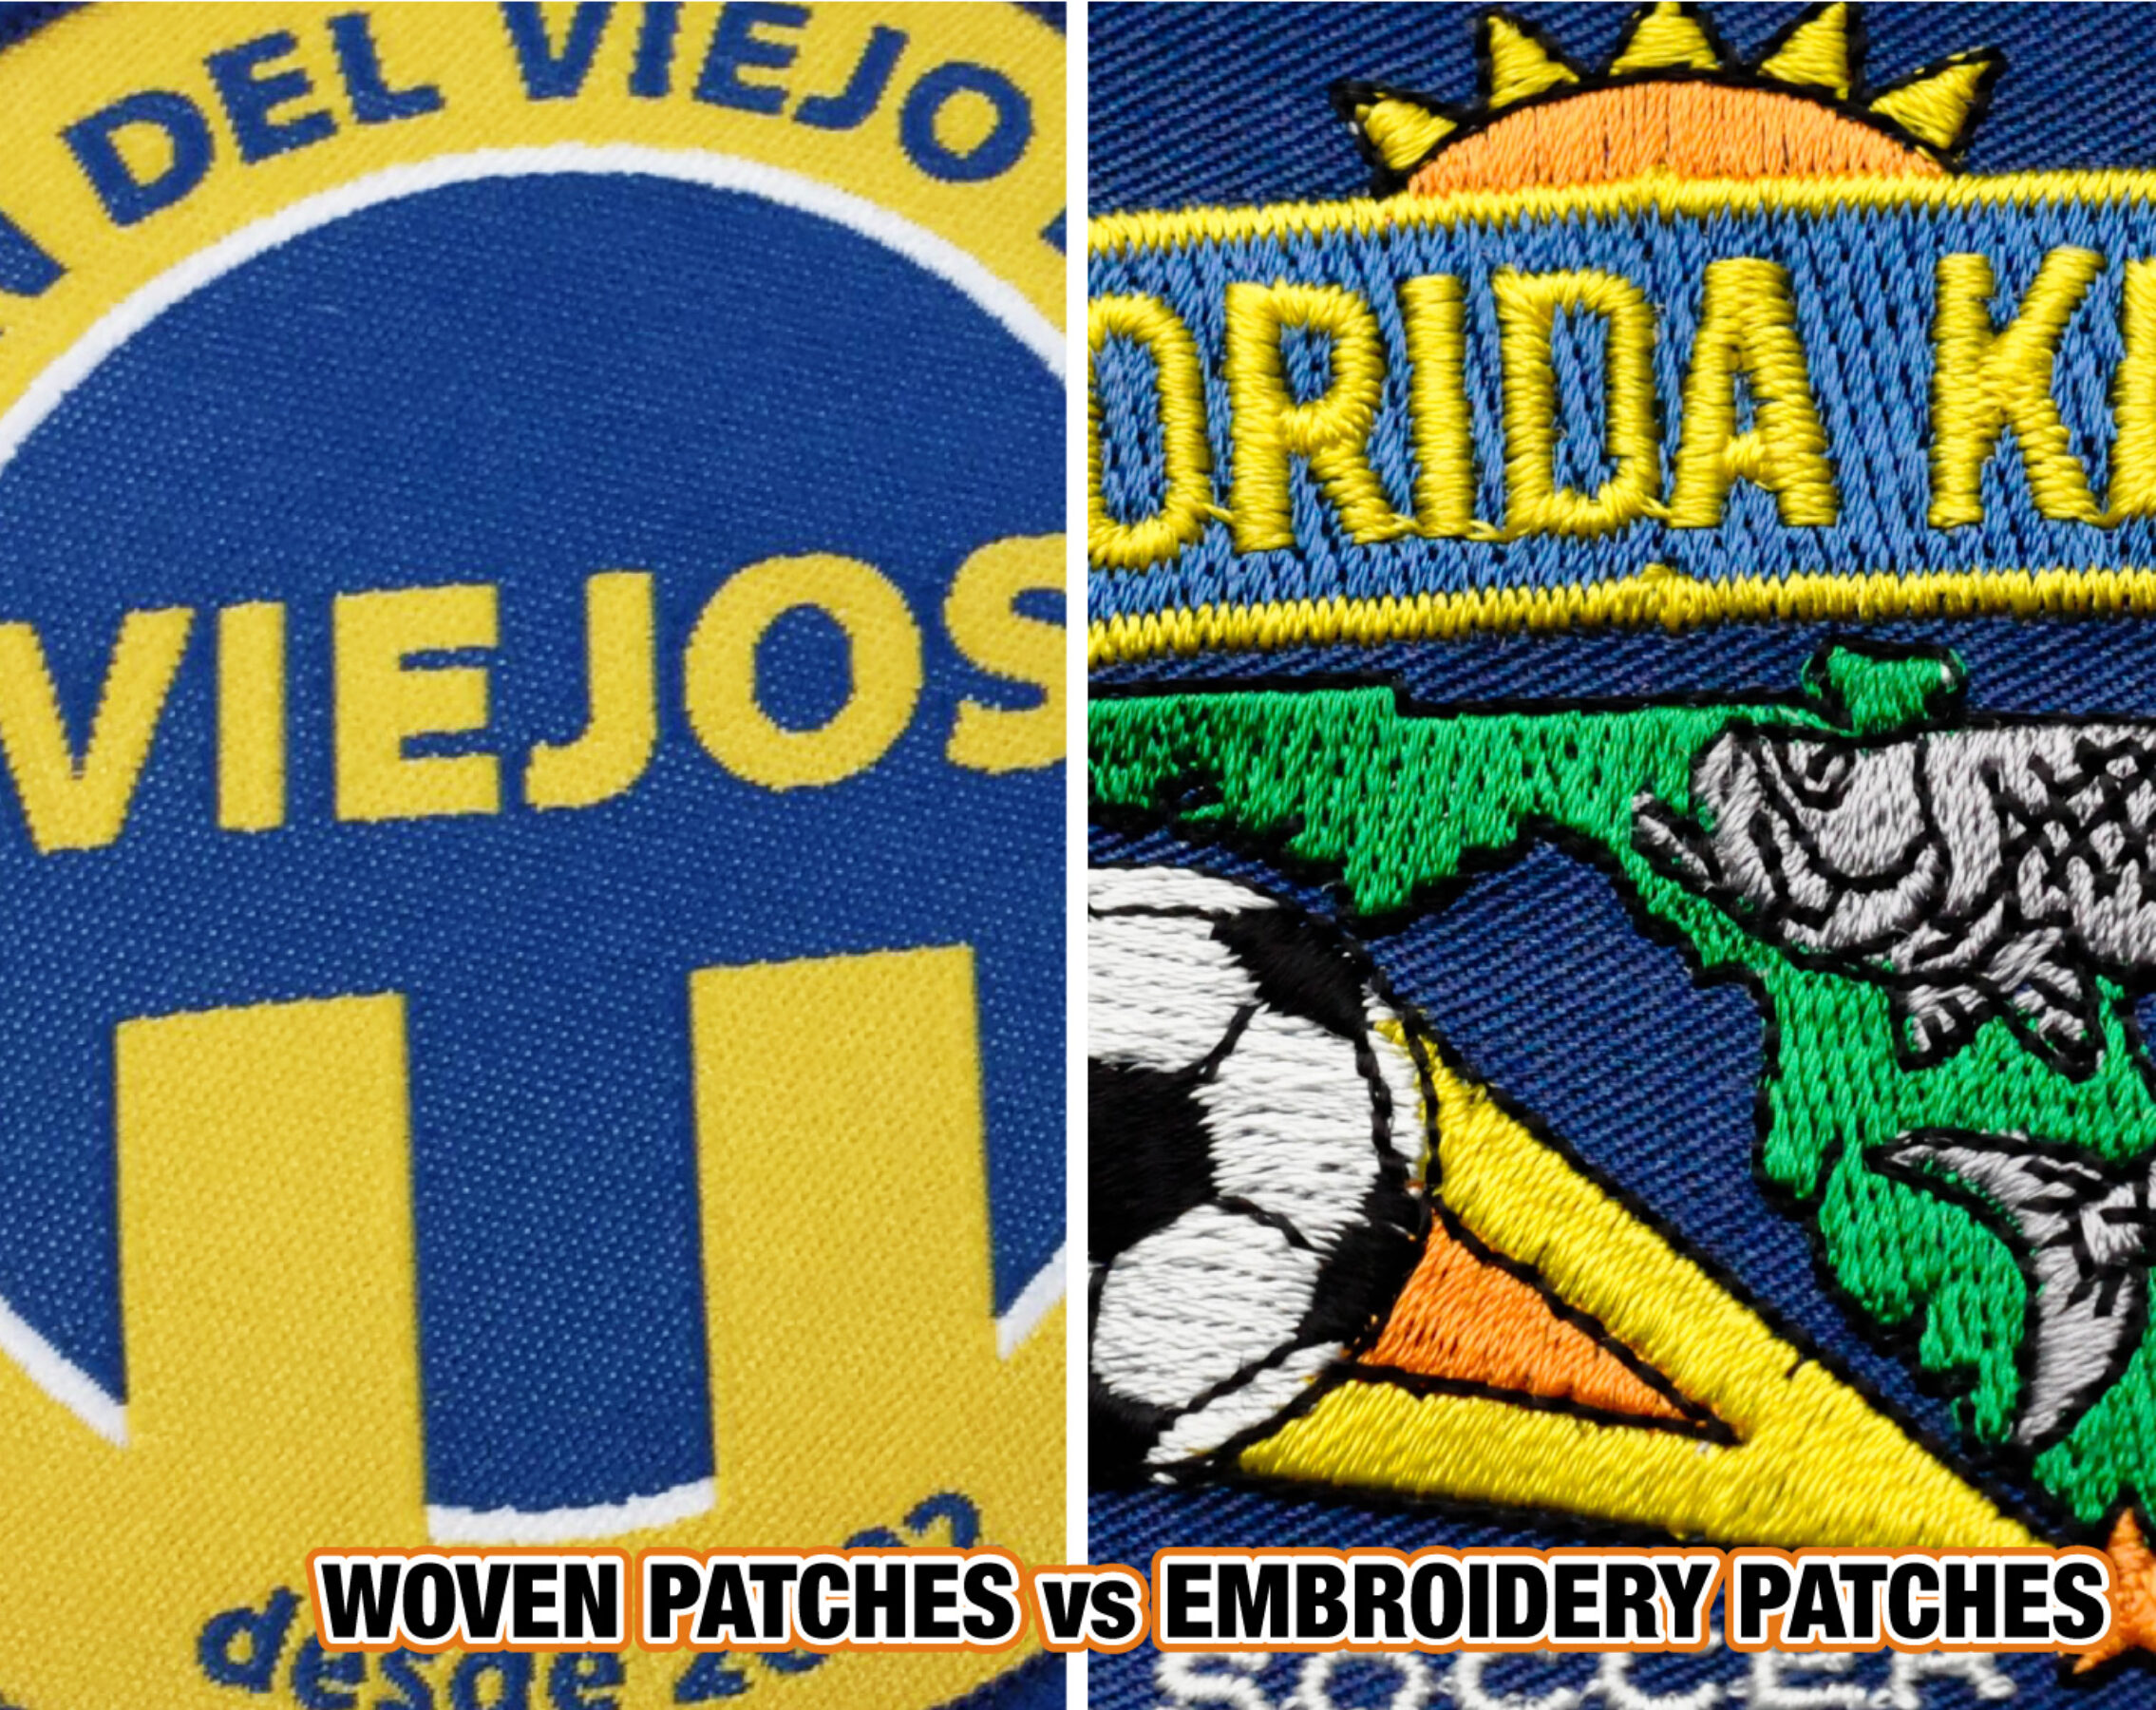 WOVEN PATCHES vs EMBROIDERY PATCHES